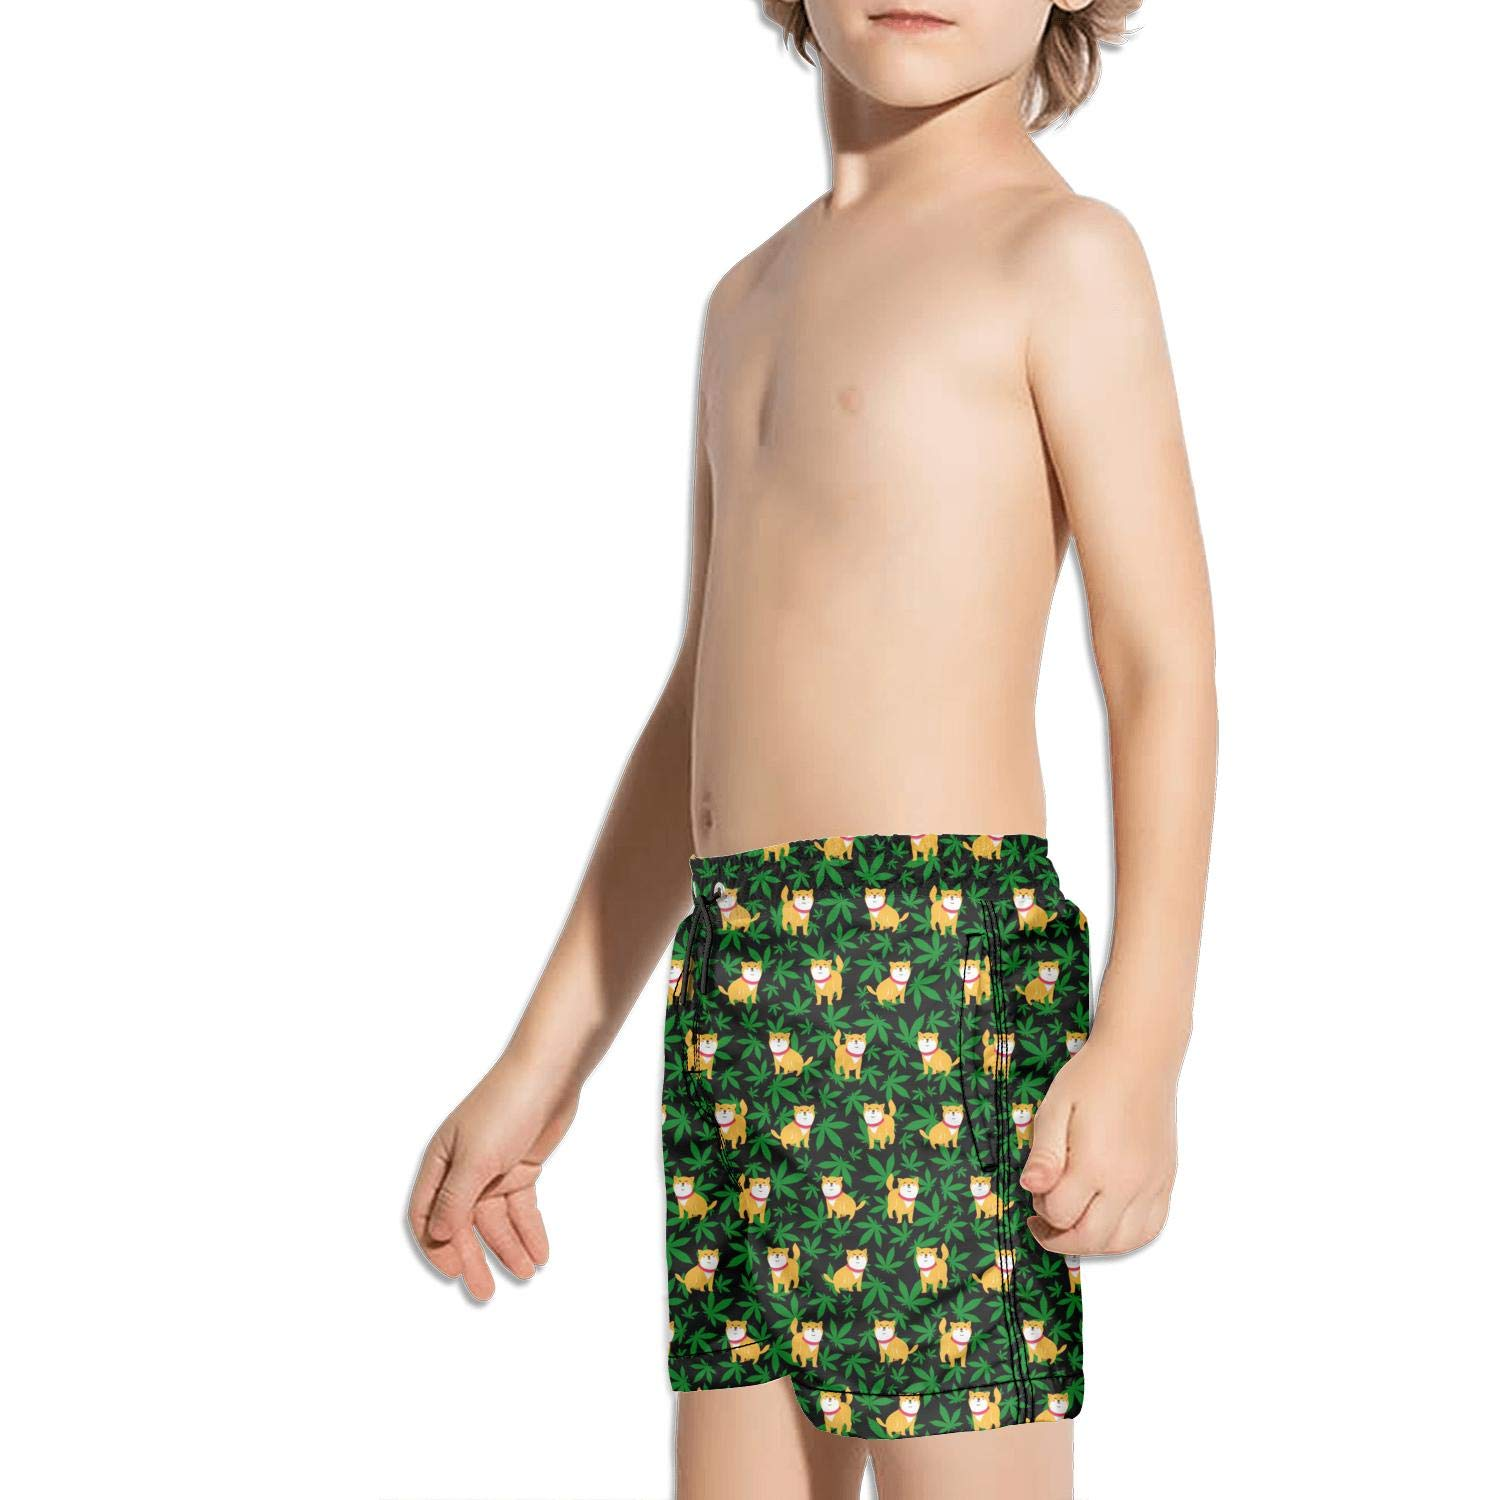 FullBo Cannabis Leaf Dog Black Little Boys Short Swim Trunks Quick Dry Beach Shorts